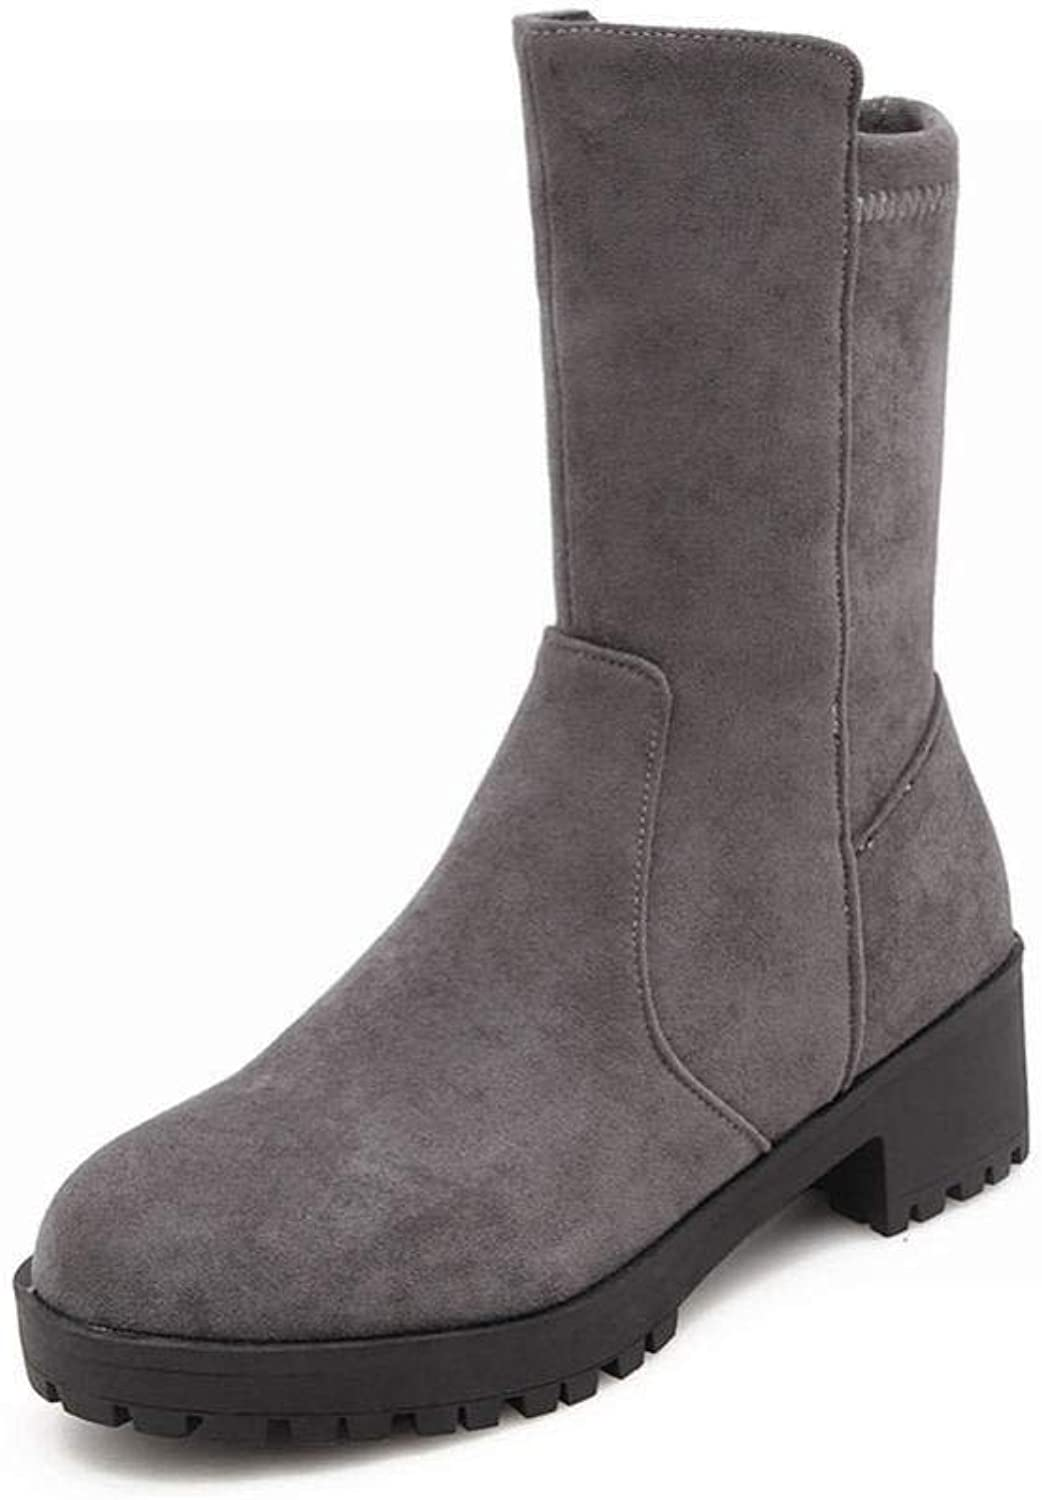 Women's Boots - Thick with Nubuck Leather Low Heel Boots Winter Non-Slip Warm Snow   35-43